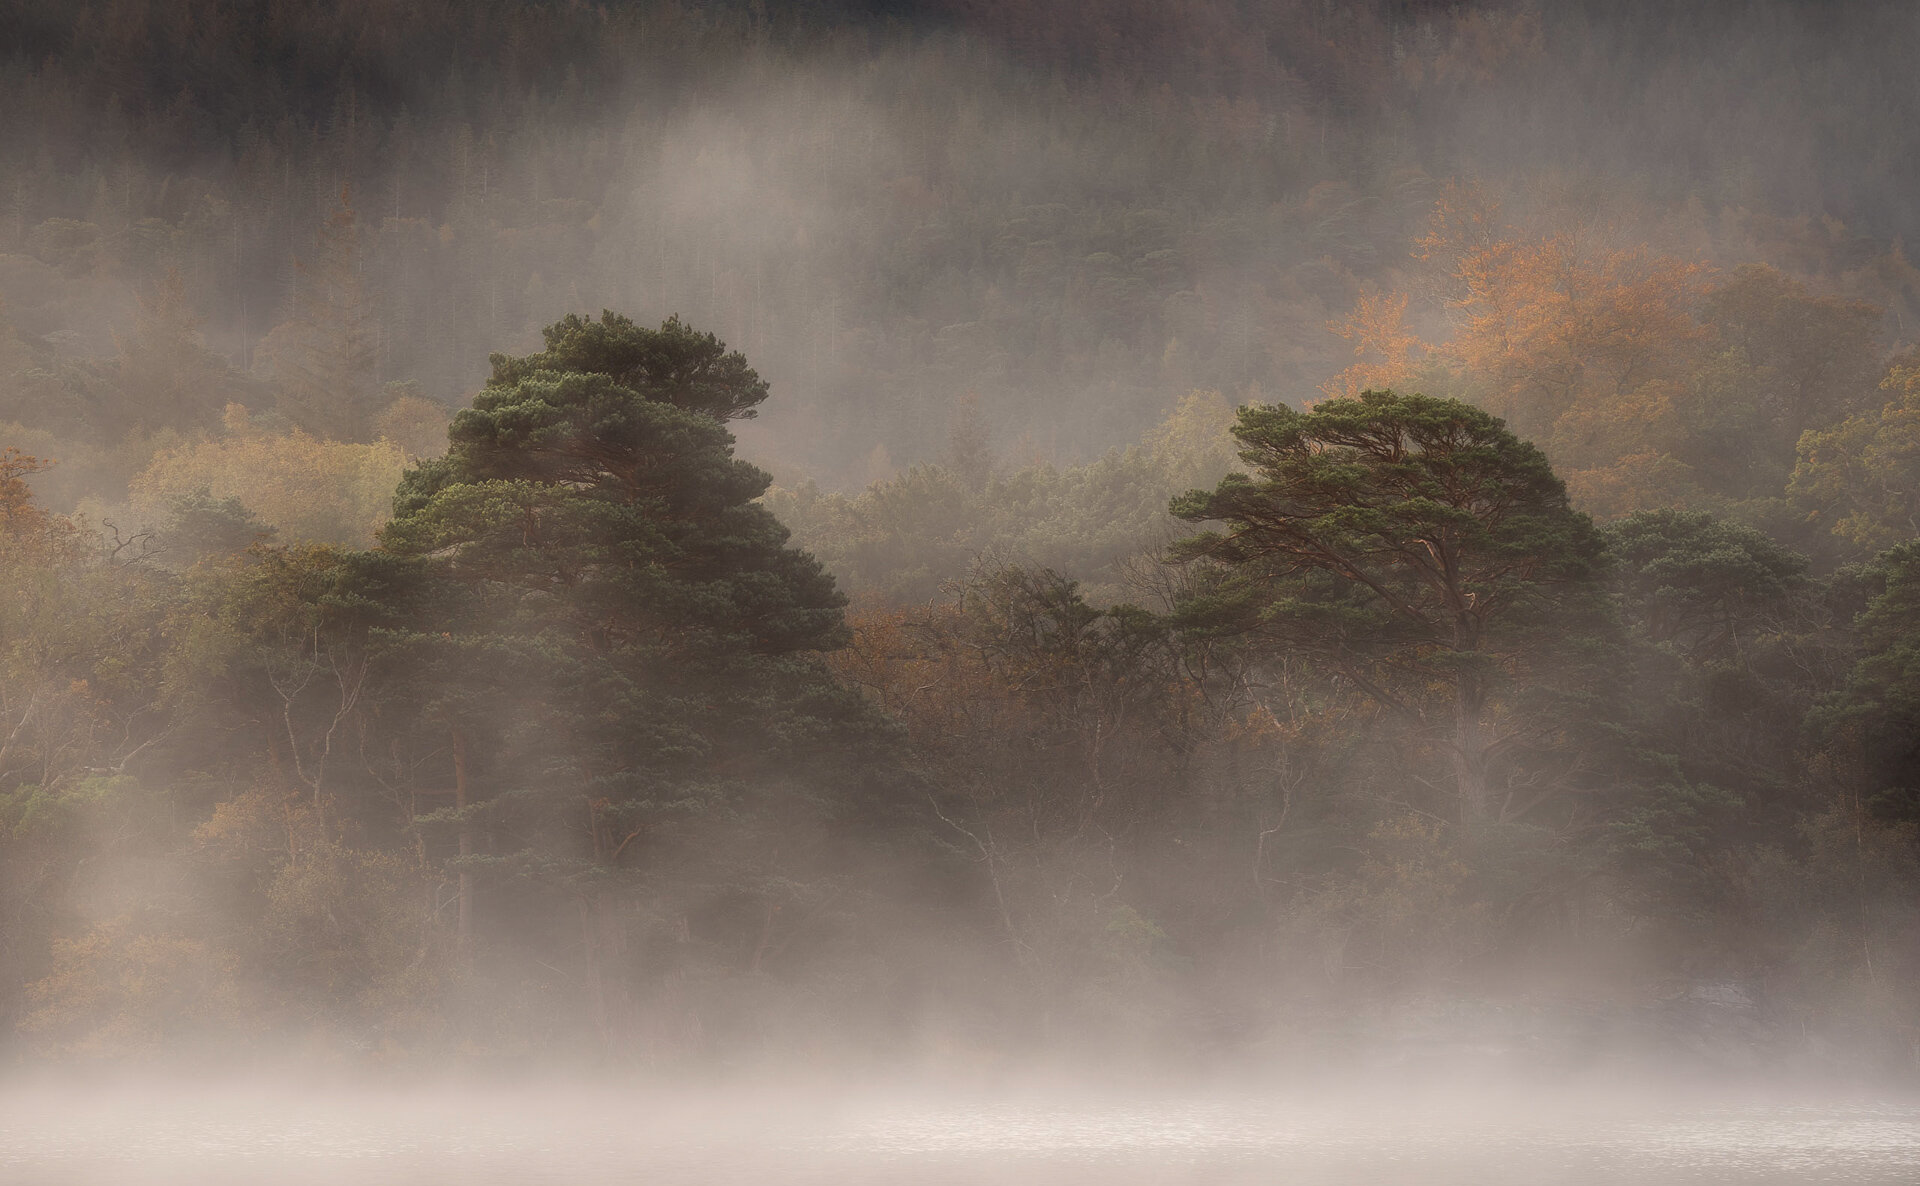 Pine trees rising from the mist- shot at 100mm